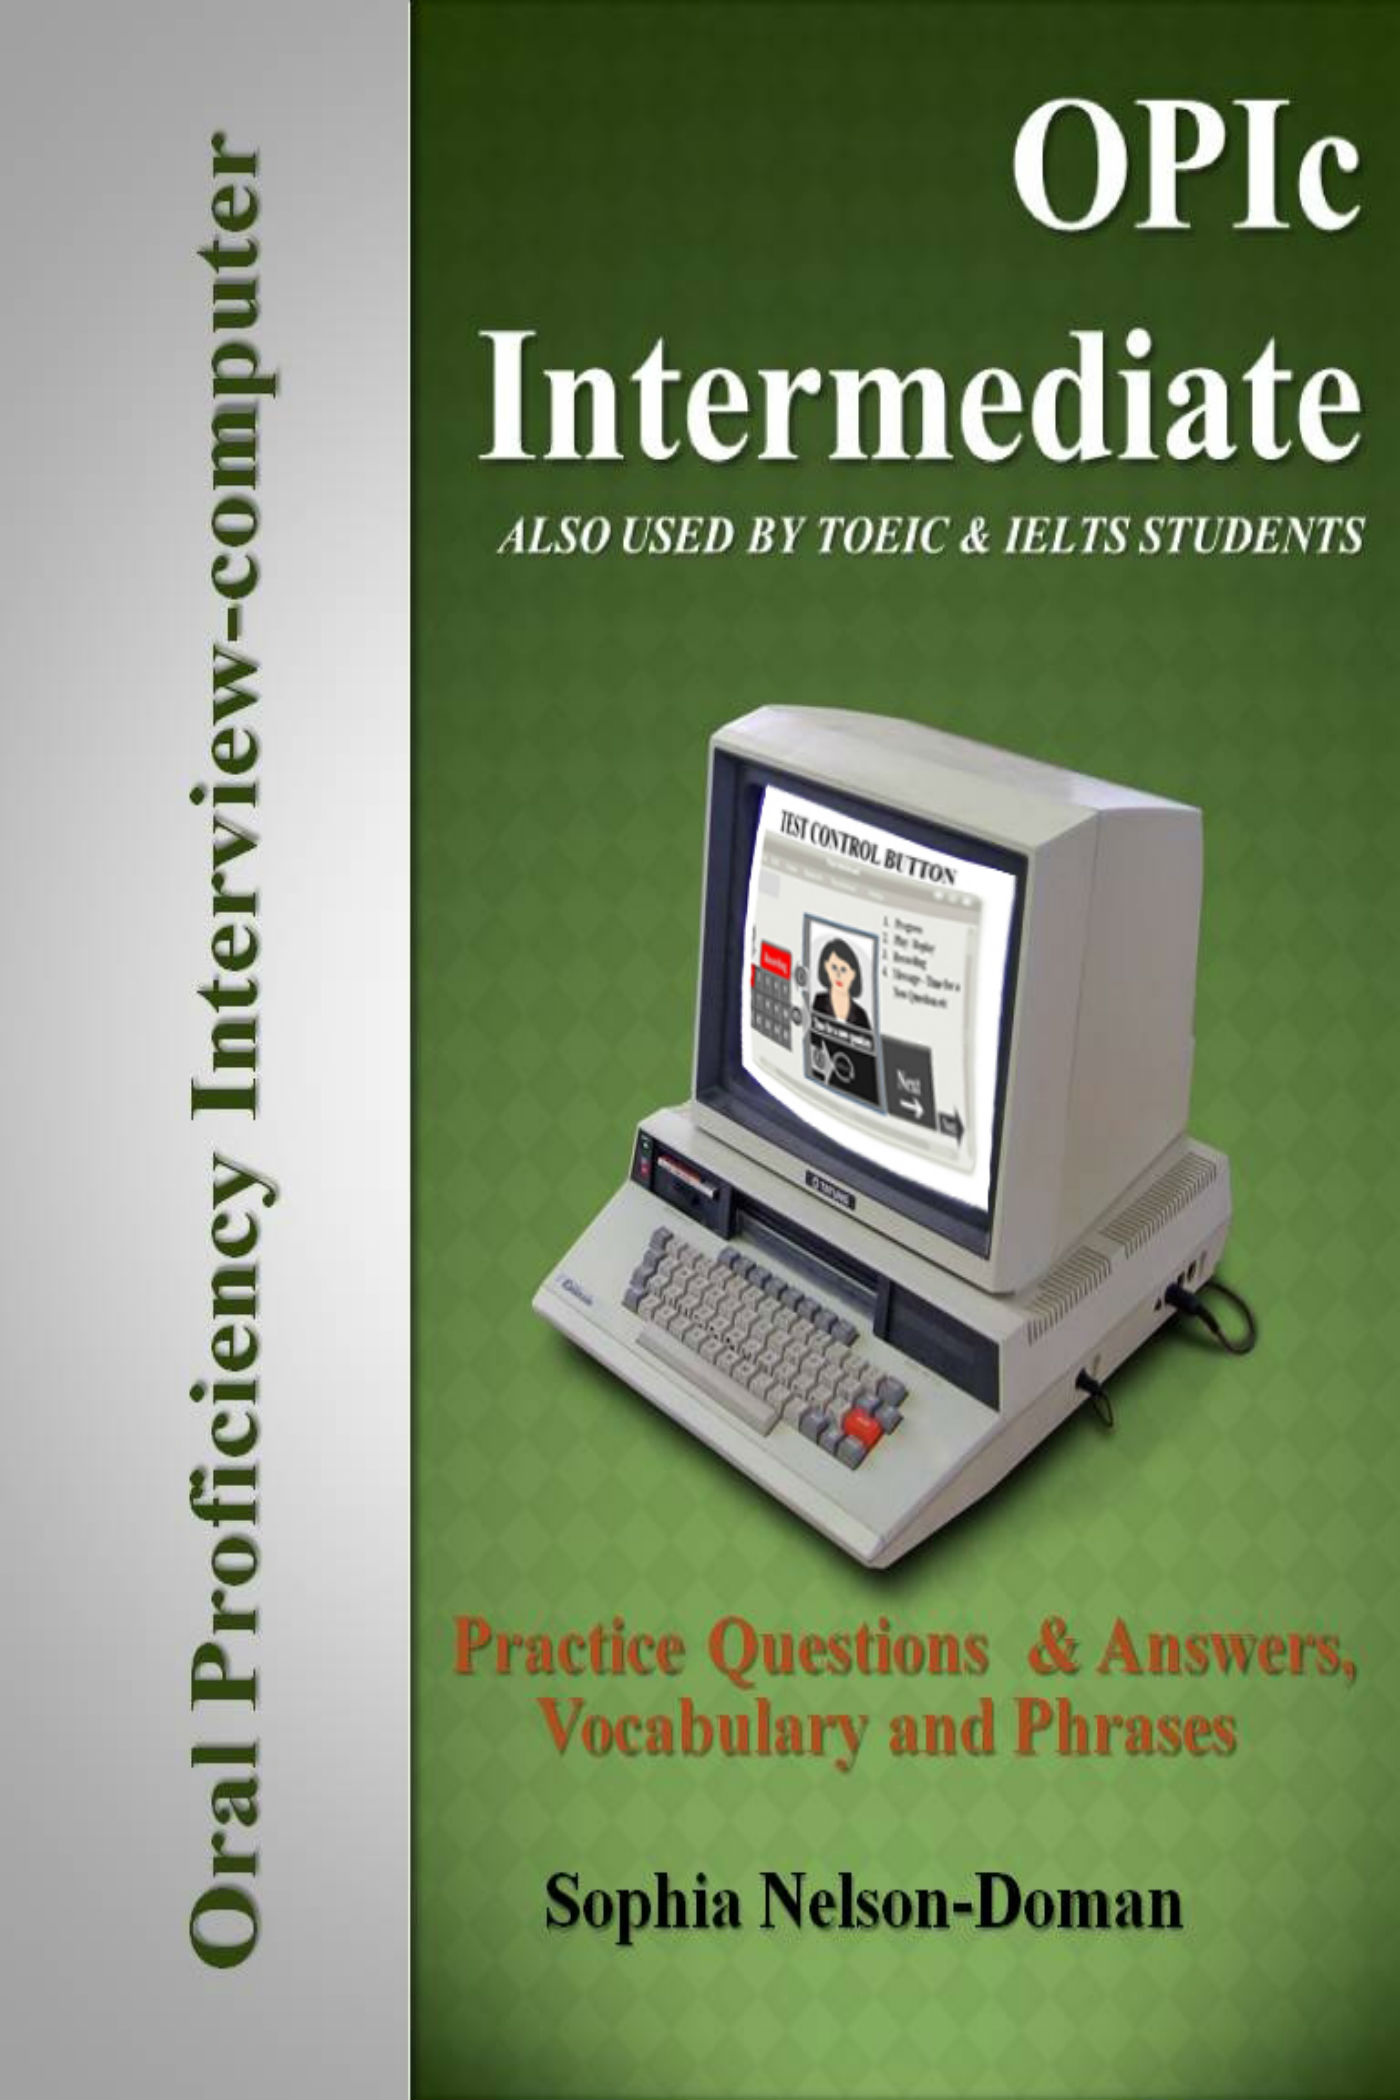 OPIc Intermediate: OPIc - ACTFL Speaking Test Preparation, an Ebook by  Sophia Nelson-Doman